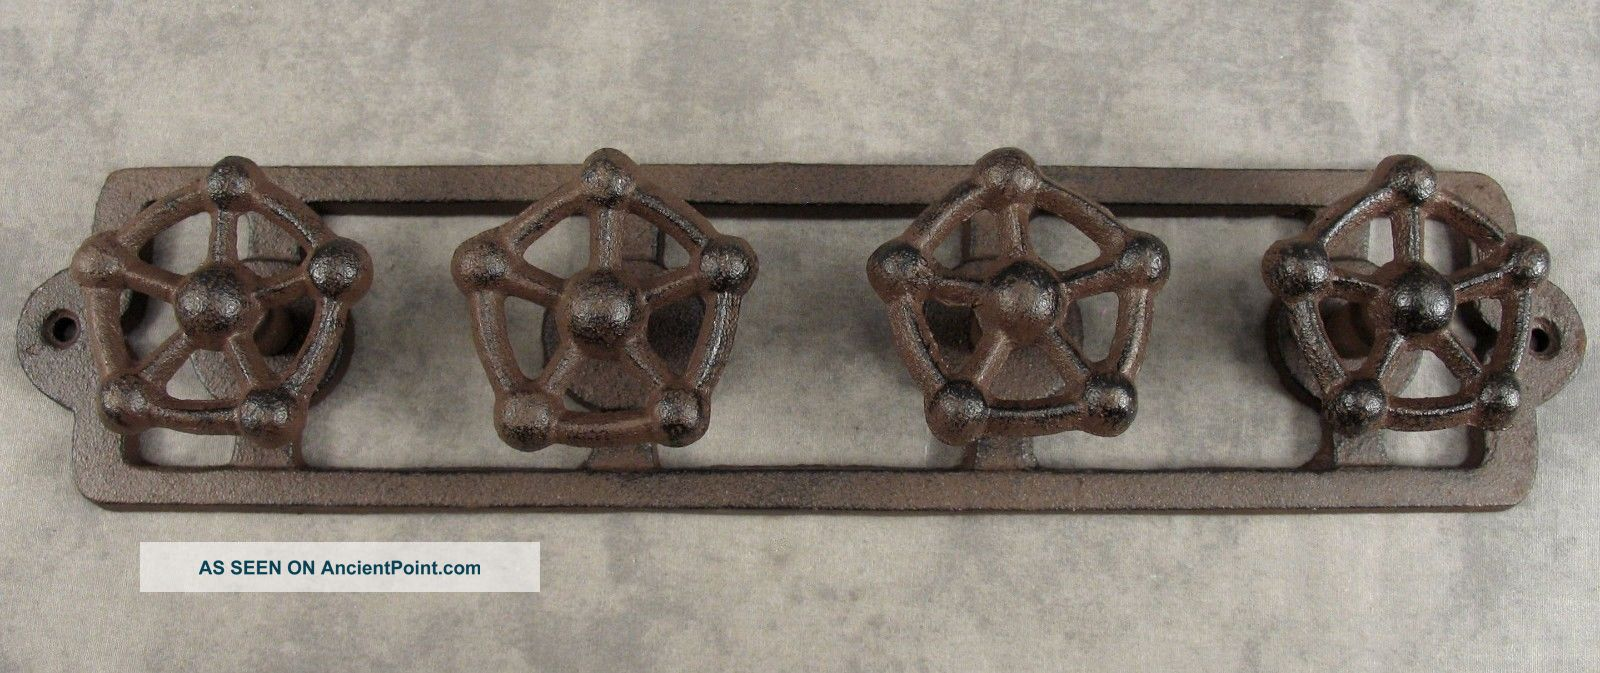 Industrial Valve Handle 4 Knob Steampunk Sculpture Cast Iron Hook Wall Rack Other Mercantile Antiques photo